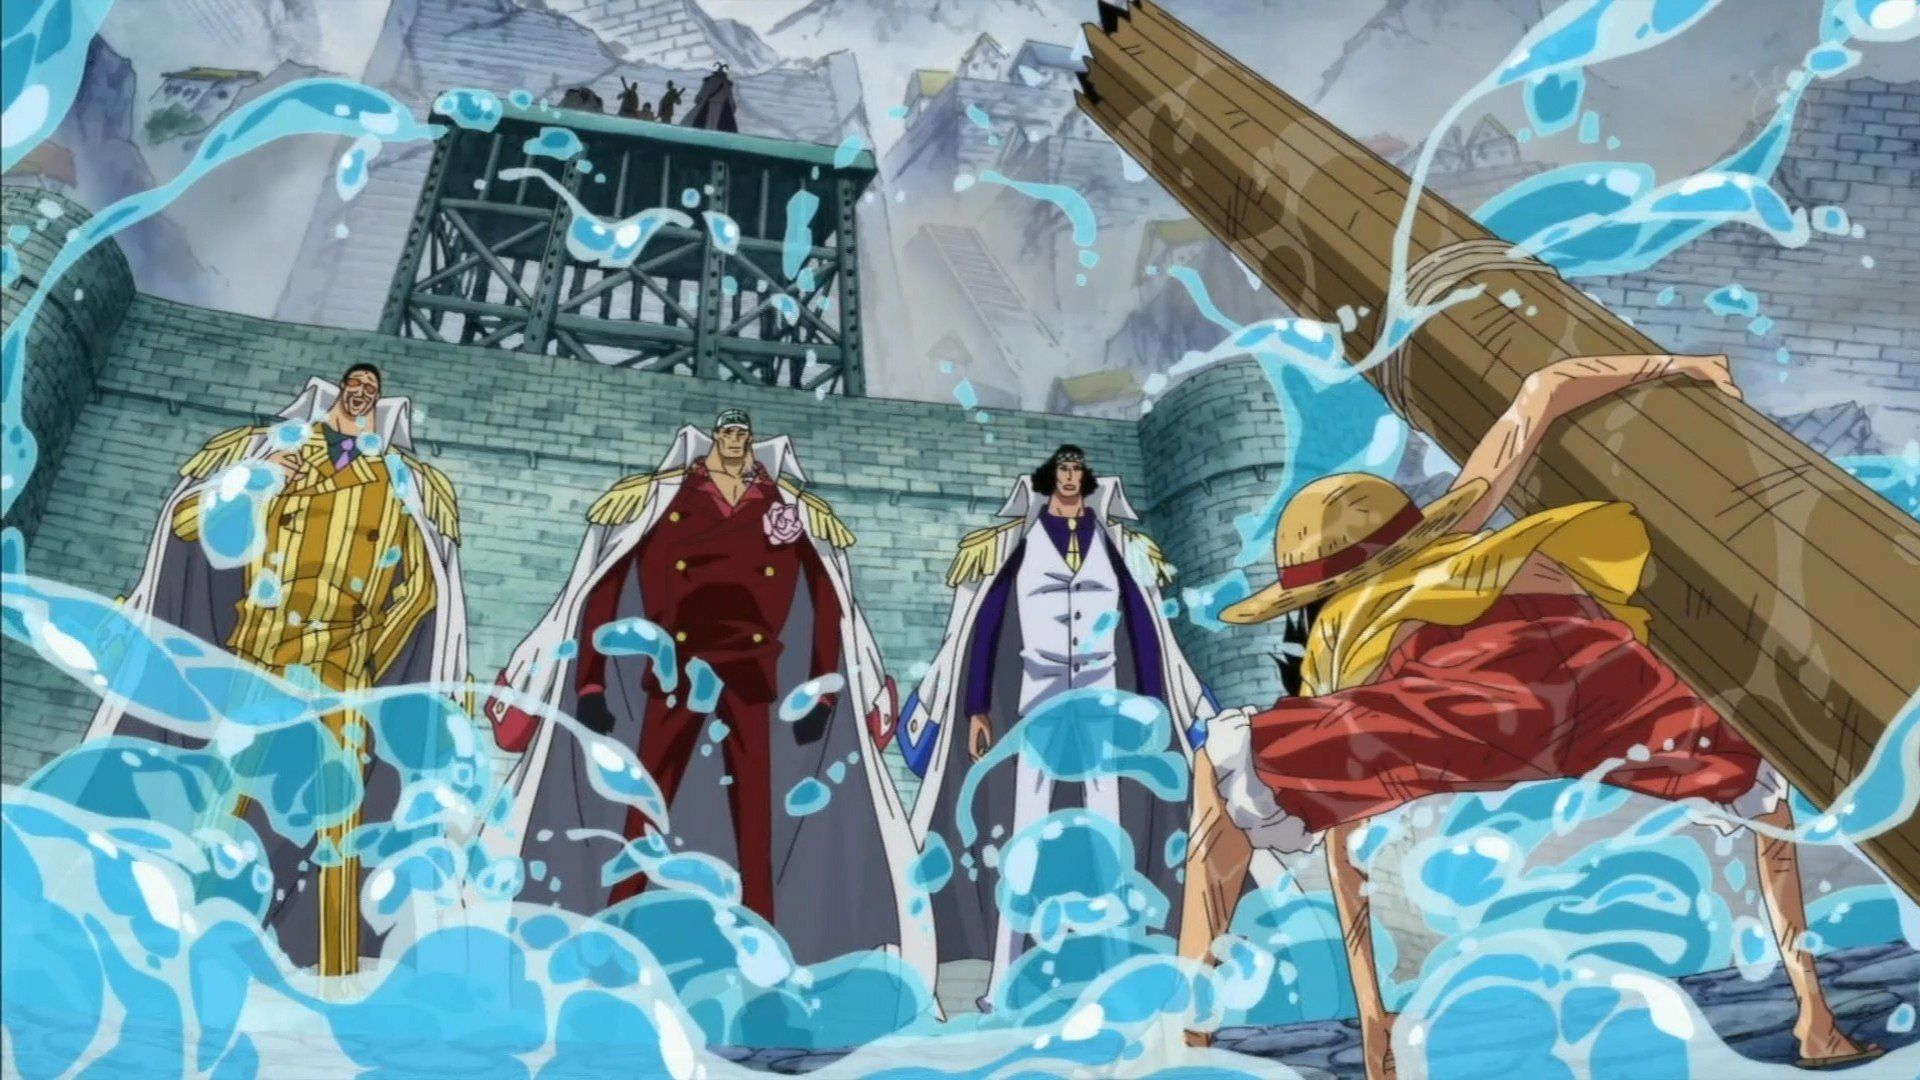 One Piece Episode 928 Release Date Plot Spoilers And Ways To Watch Online The Anime For Free In 2020 Anime One Piece Episodes Luffy